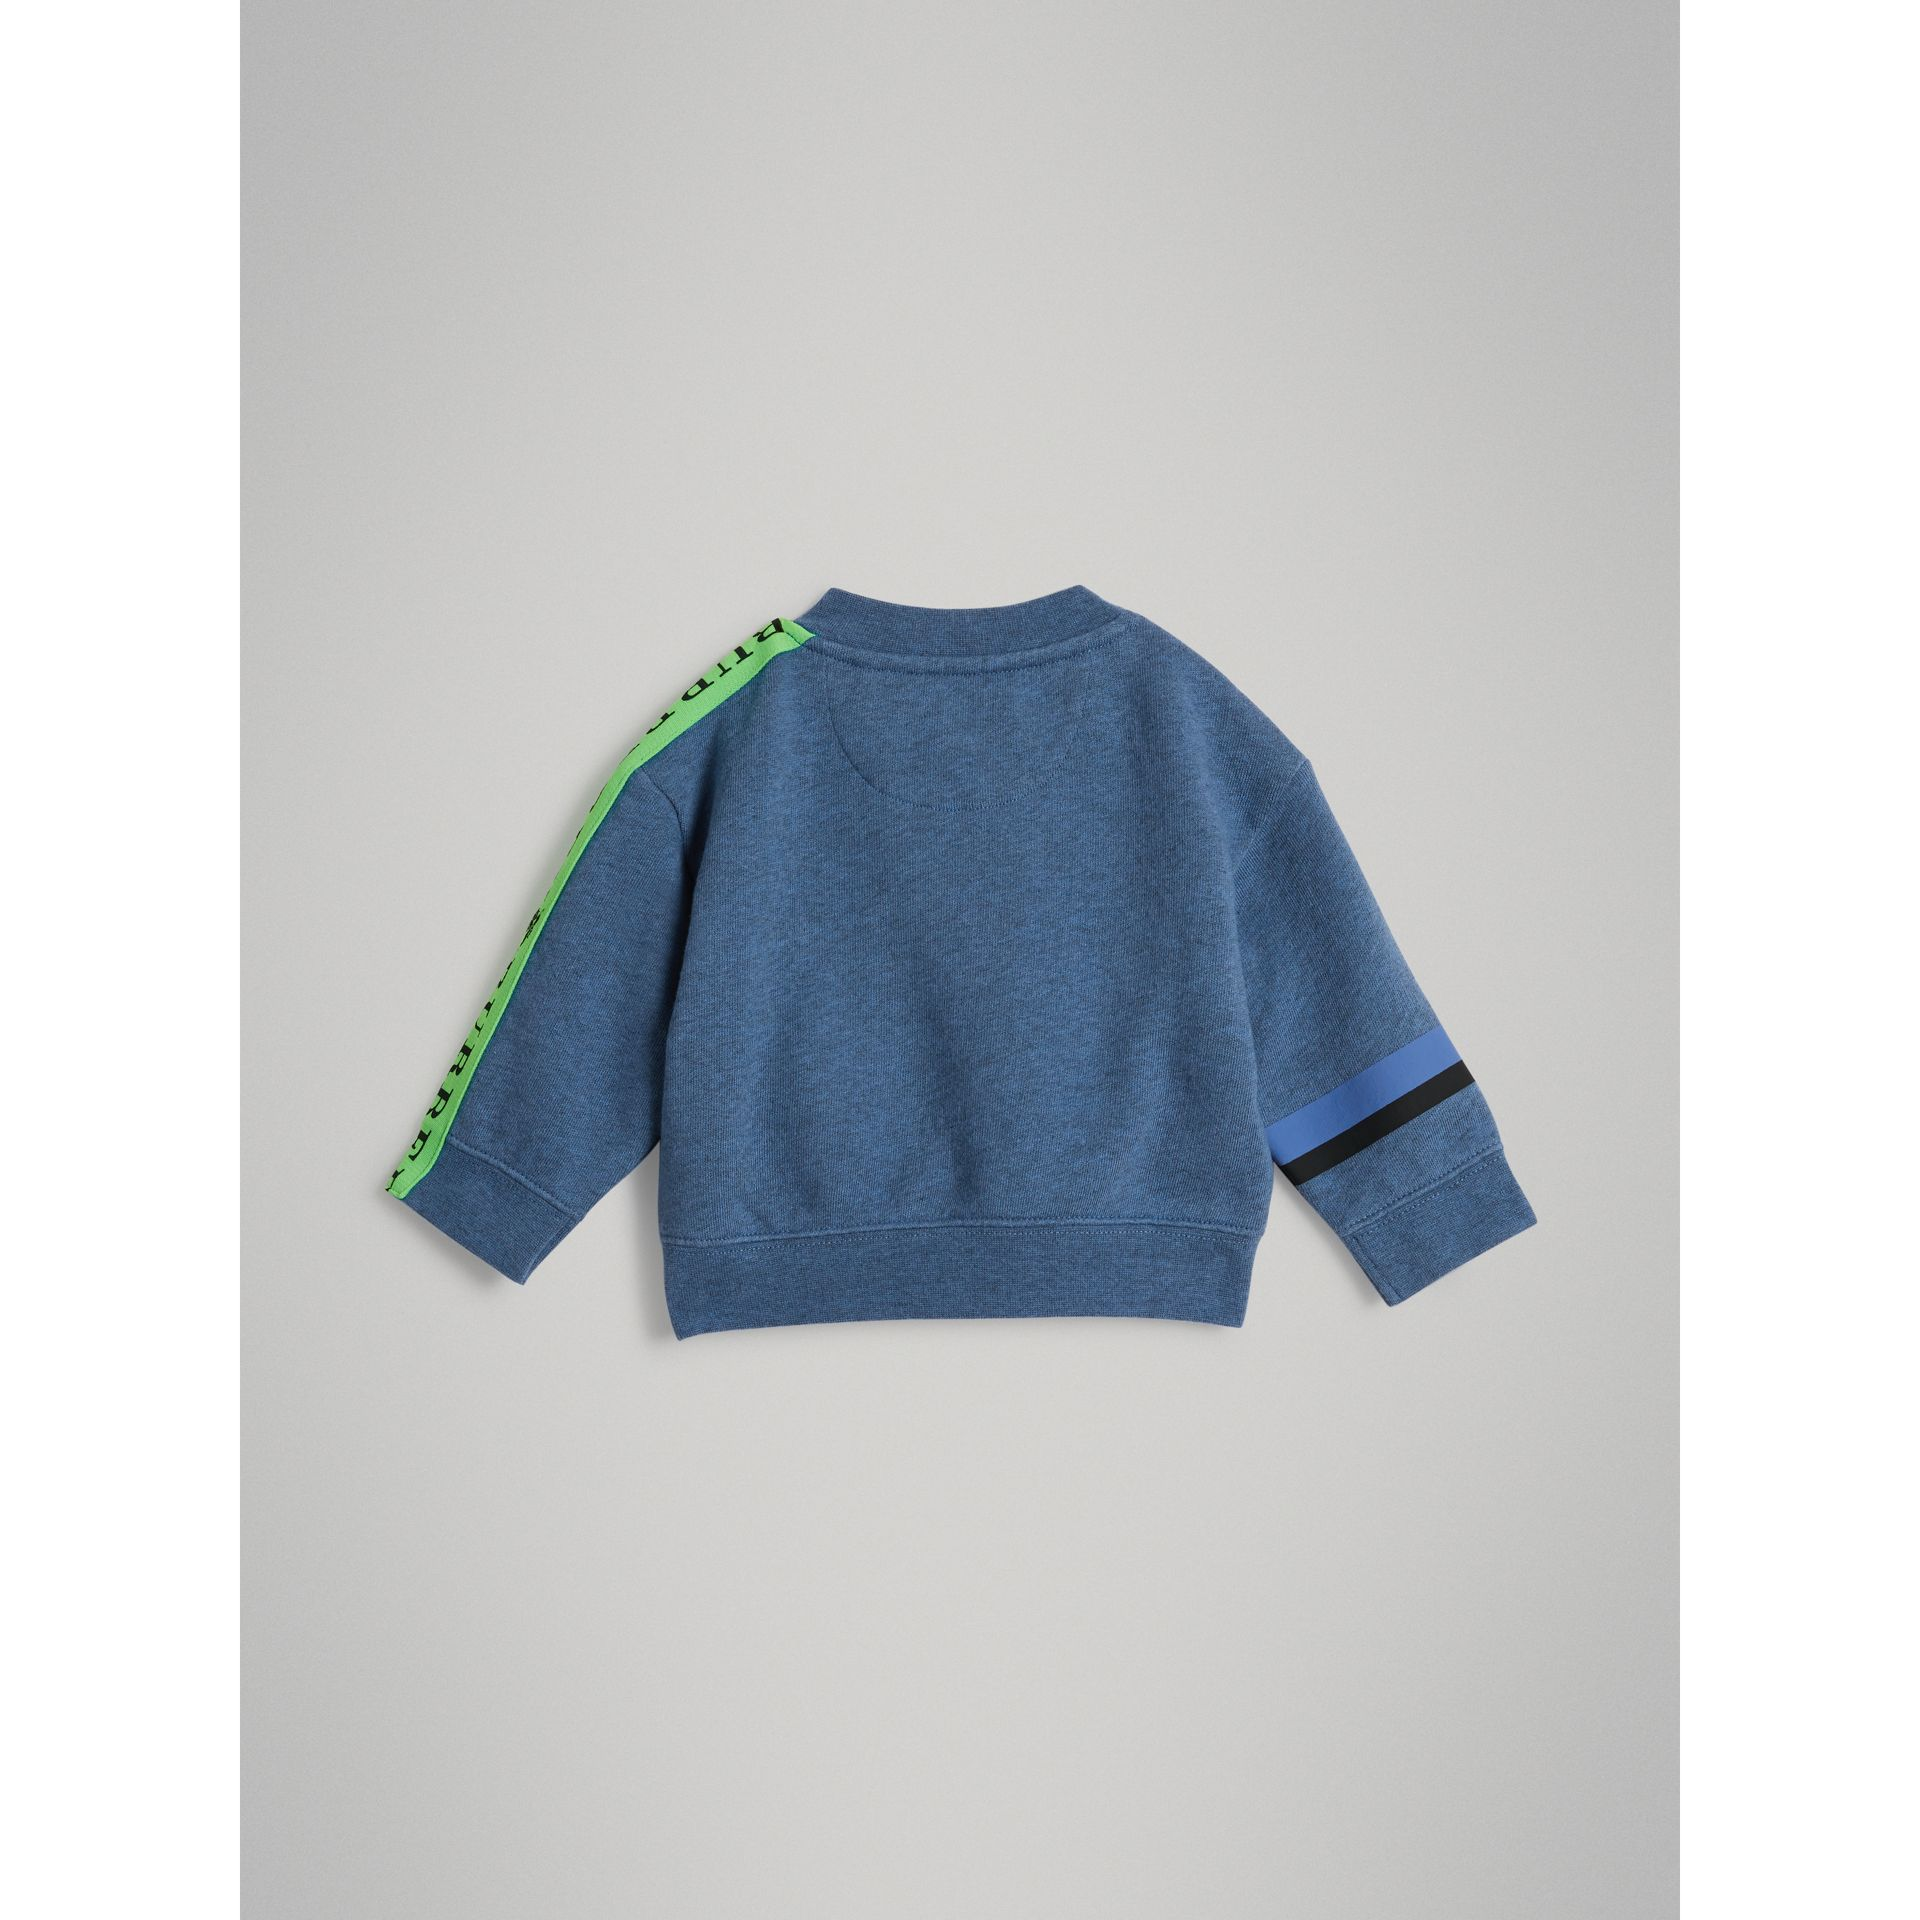 Sticker Print Cotton Sweatshirt in Blue Melange - Children | Burberry - gallery image 3